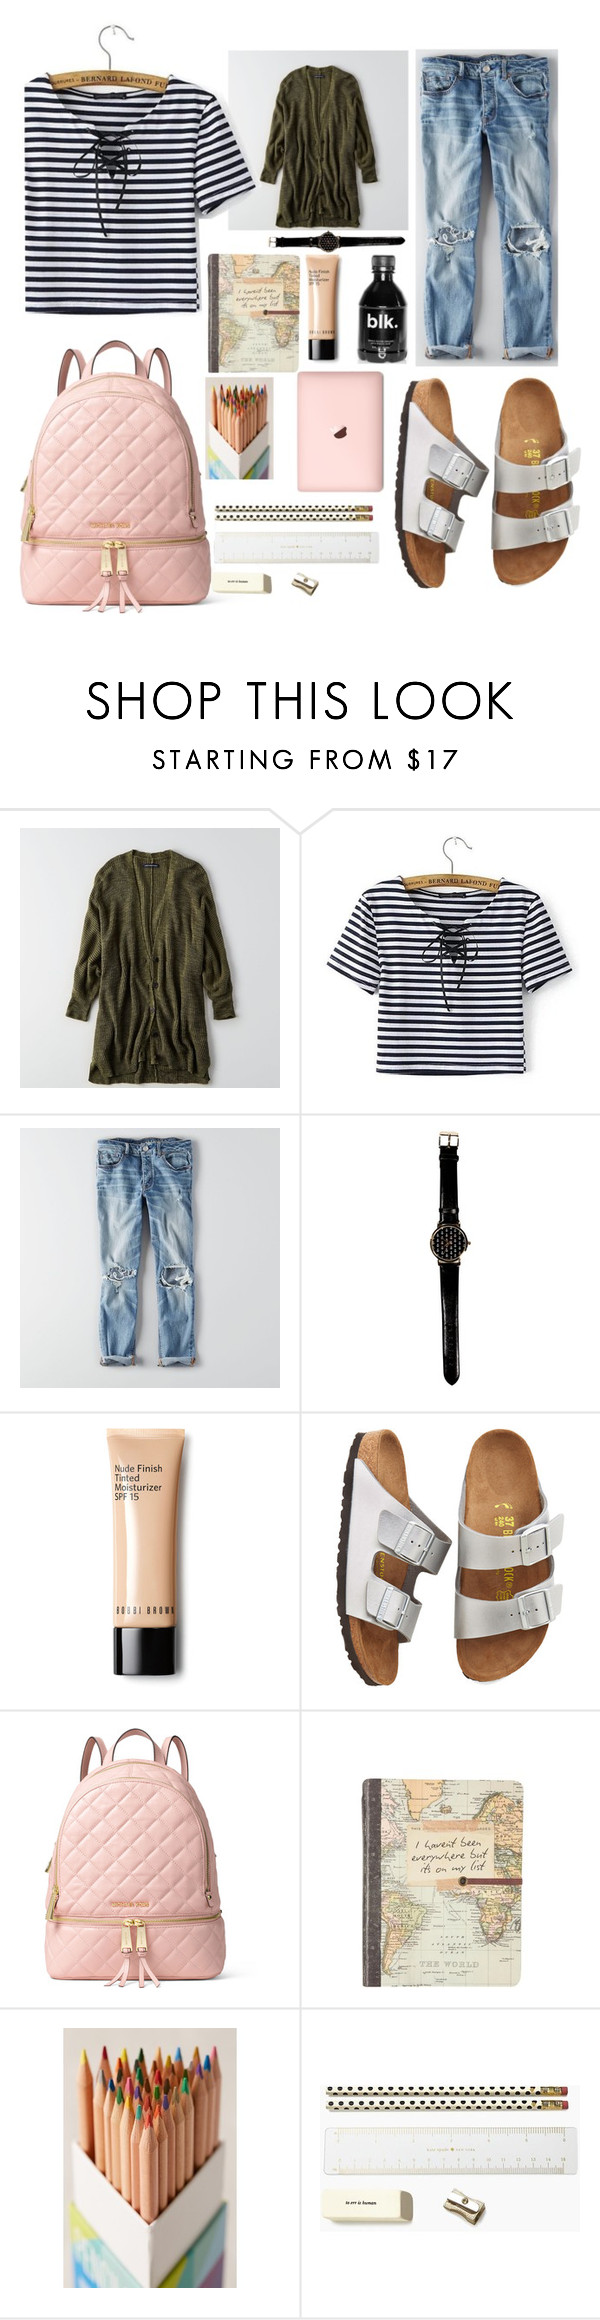 """""""Back to School"""" by madinnmichelle ❤ liked on Polyvore featuring American Eagle Outfitters, Bobbi Brown Cosmetics, Birkenstock, MICHAEL Michael Kors, Urban Outfitters and Kate Spade"""